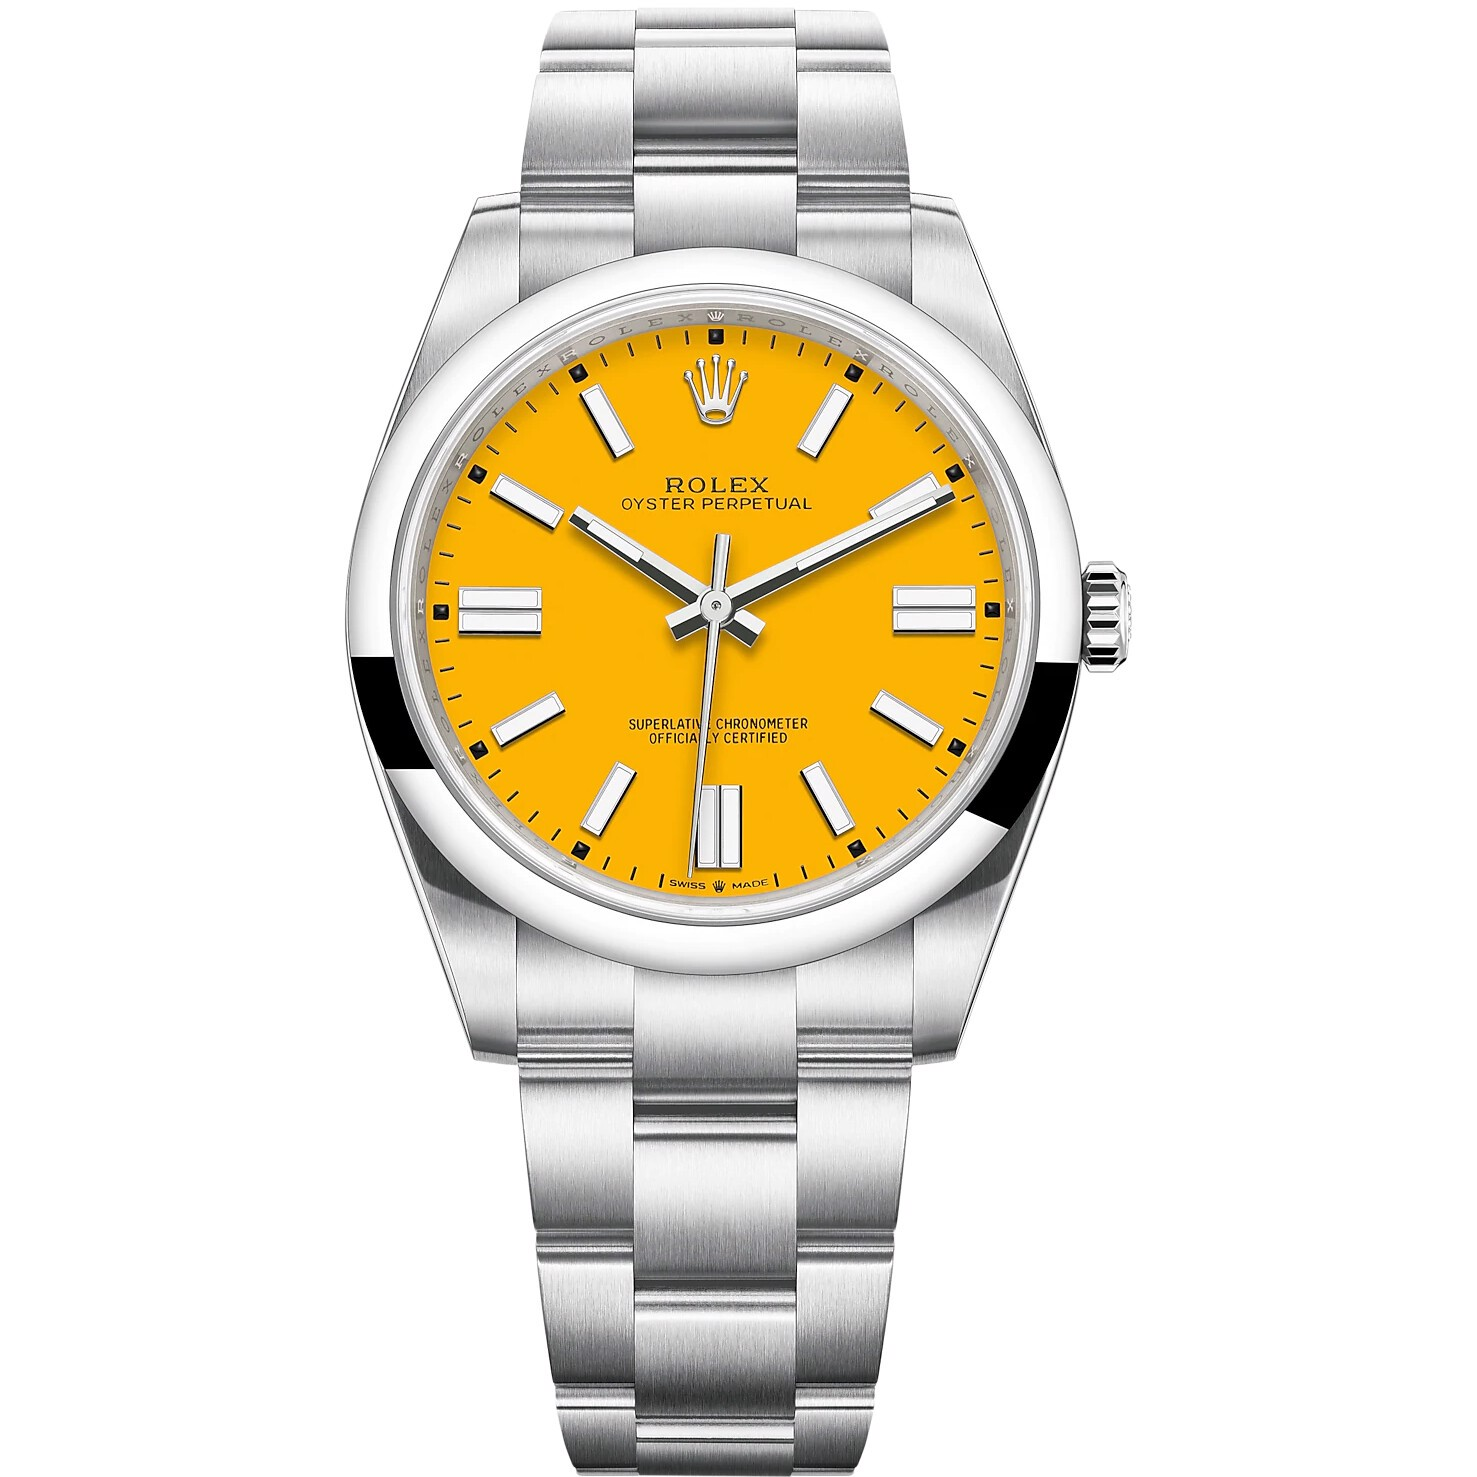 Rolex Oyster Perpetual 124300-0004 Watch 41mm